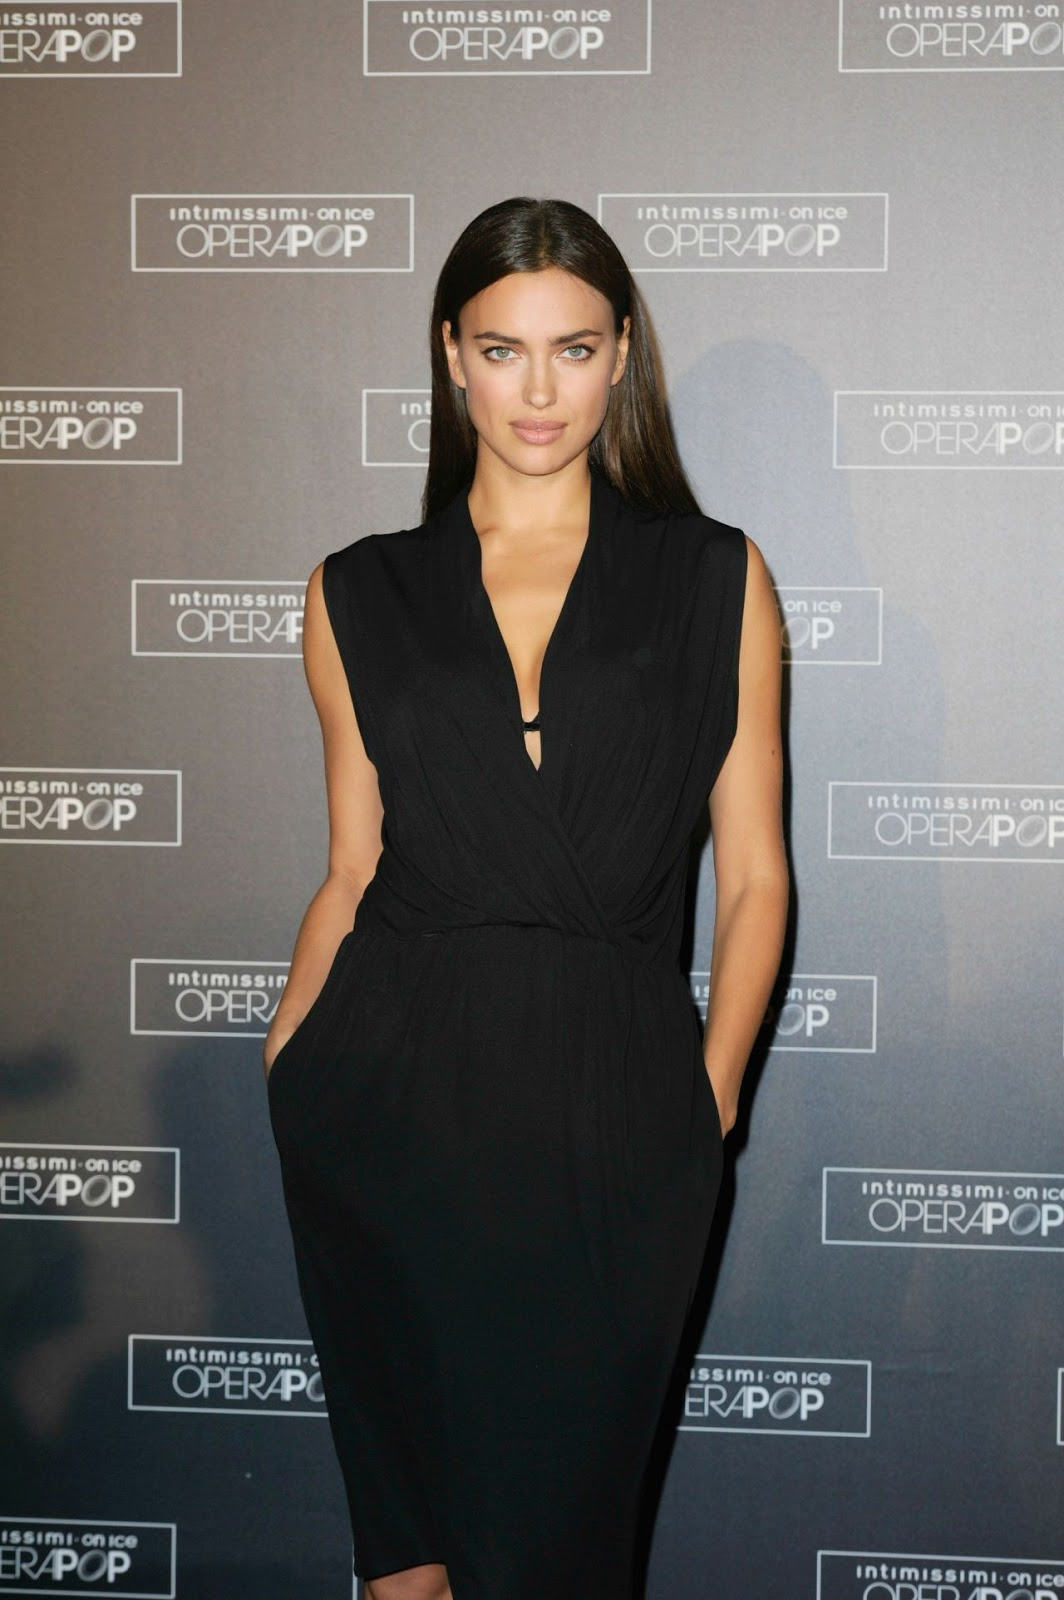 Irina Shayk is elegant in black at the Intimissimi on Ice OperaPop Event in Verona